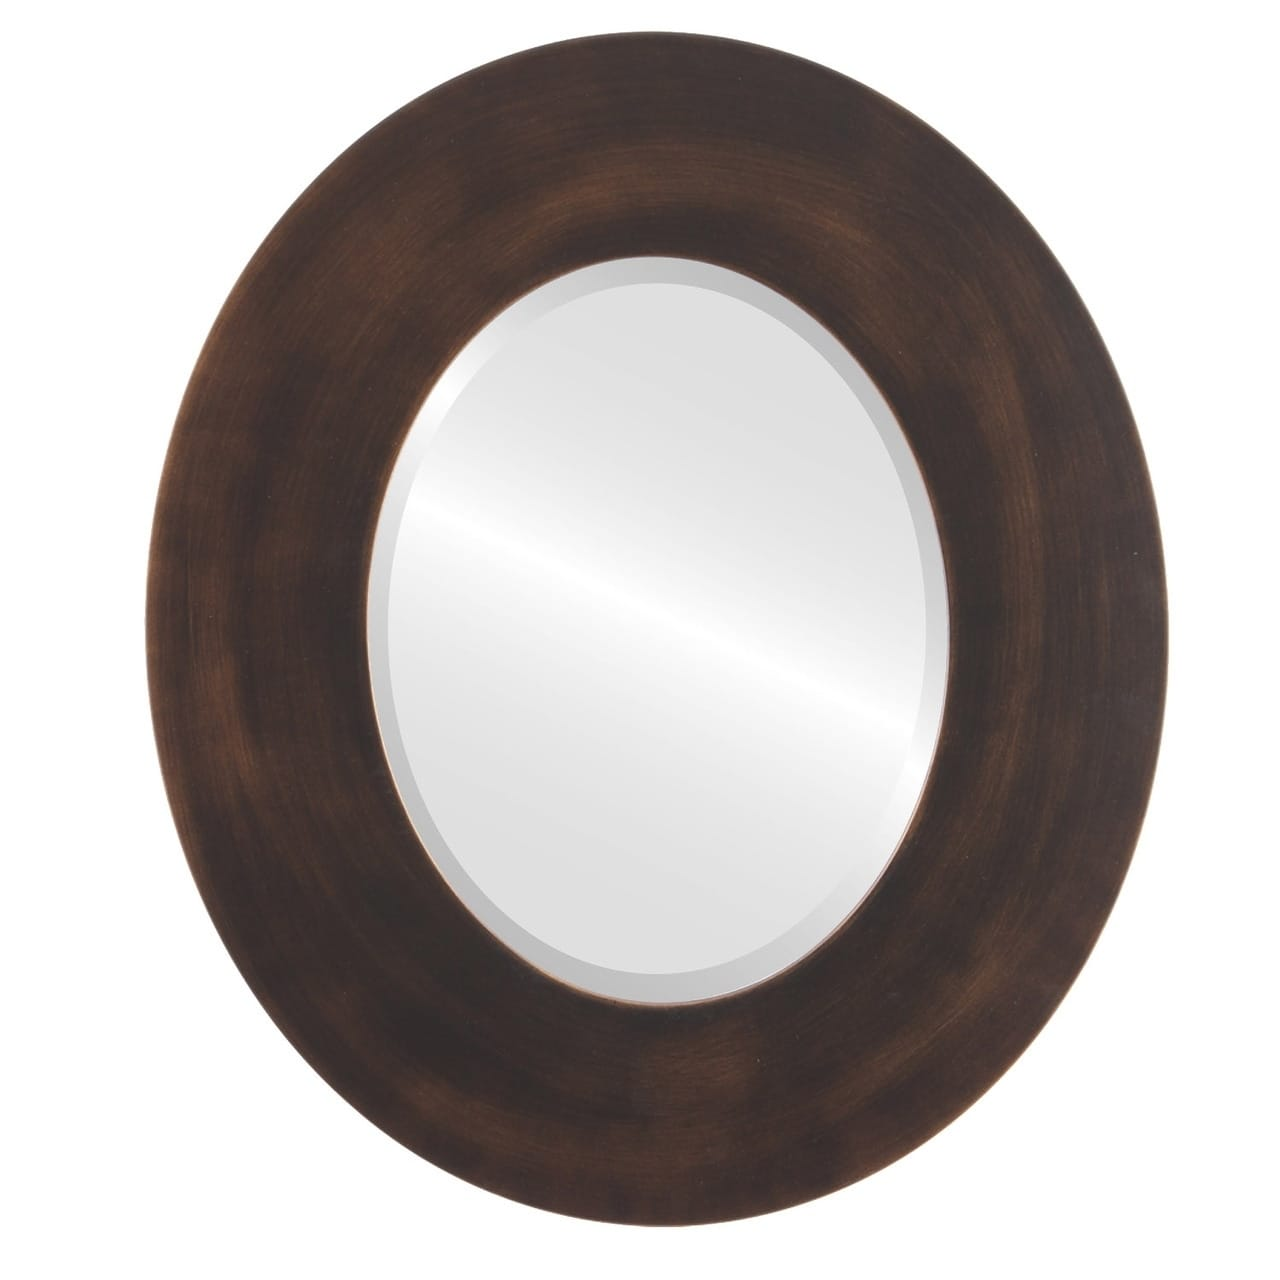 The Oval and Round Mirror Store Tribeca Rubbed Antique Bronze Wood Framed Oval Mirror by Overstock